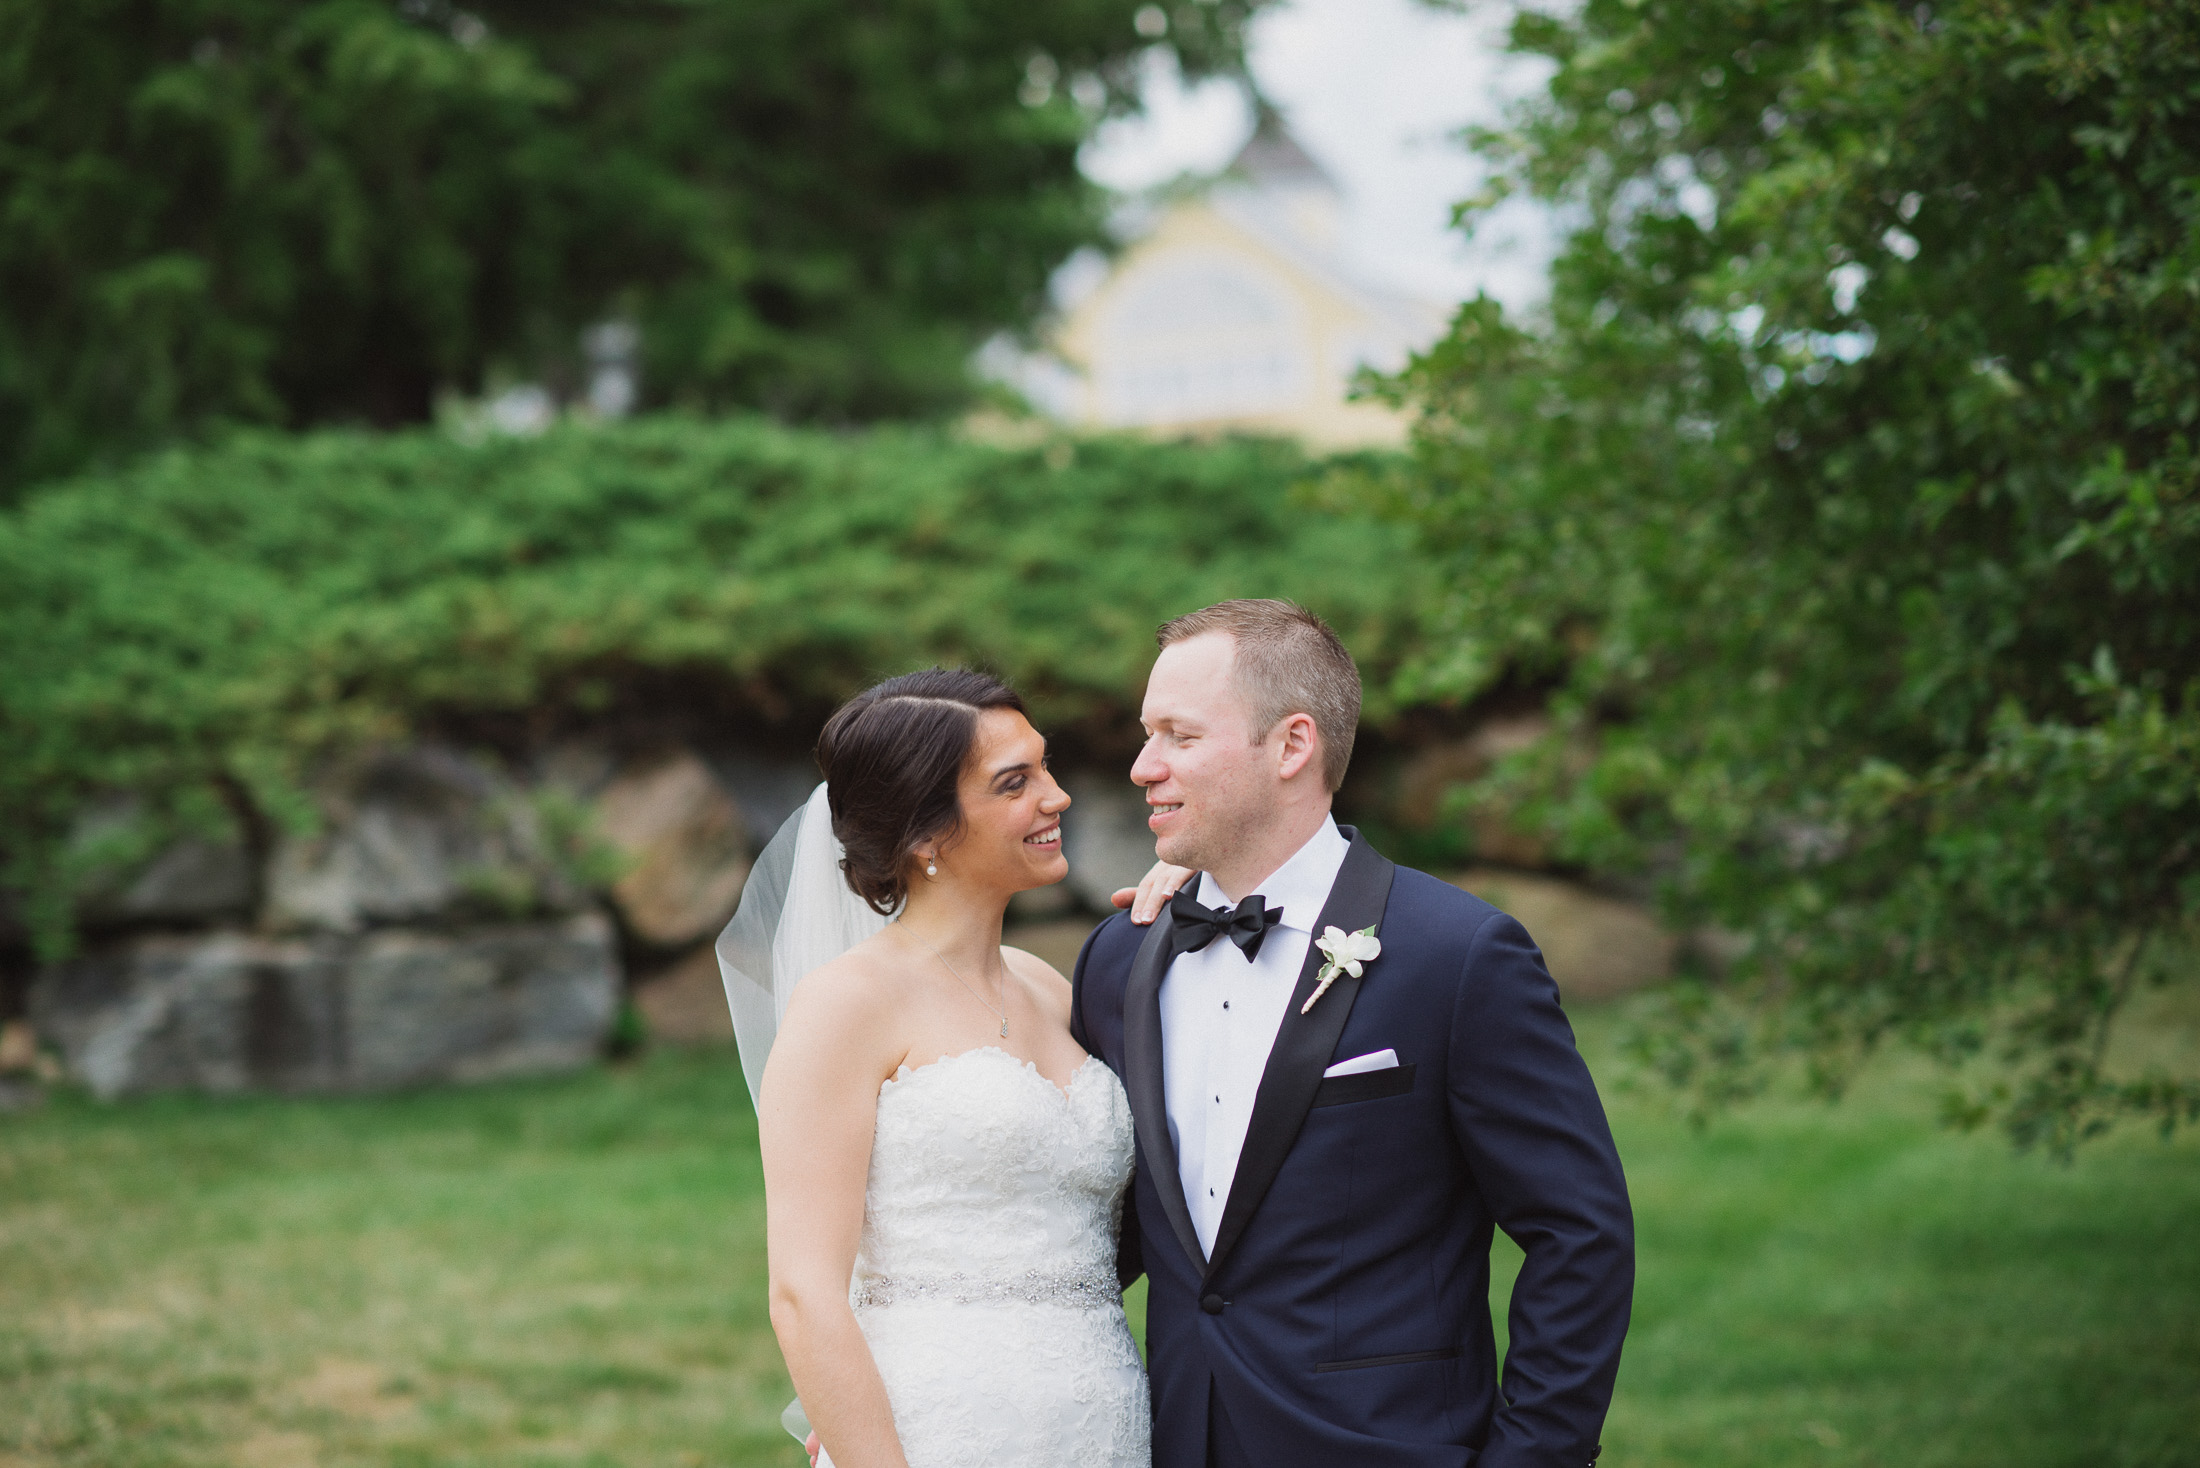 NH Wedding Photographer: bride and groom looking at each other